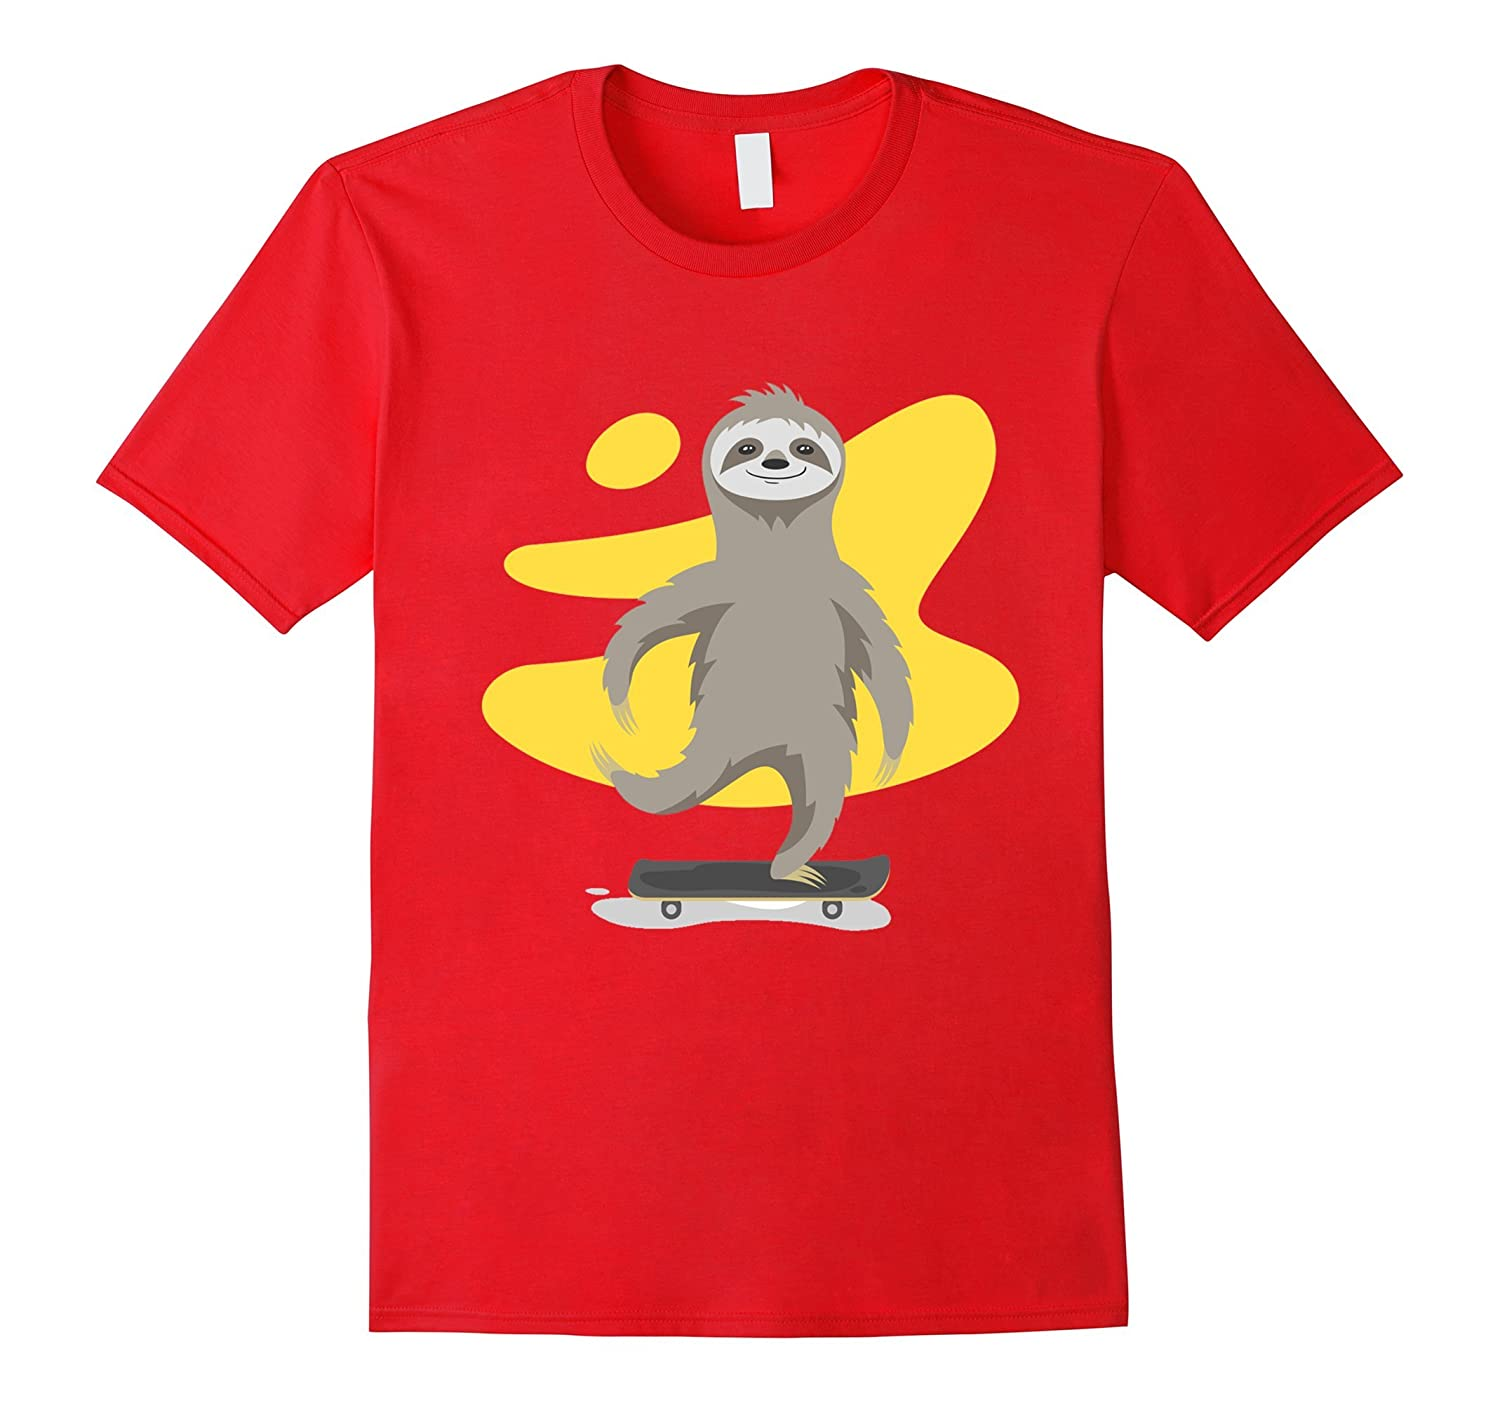 b27efada0 Sloth T-Shirt – Sloth riding on skateboard shirt-4LVS – 4loveshirt